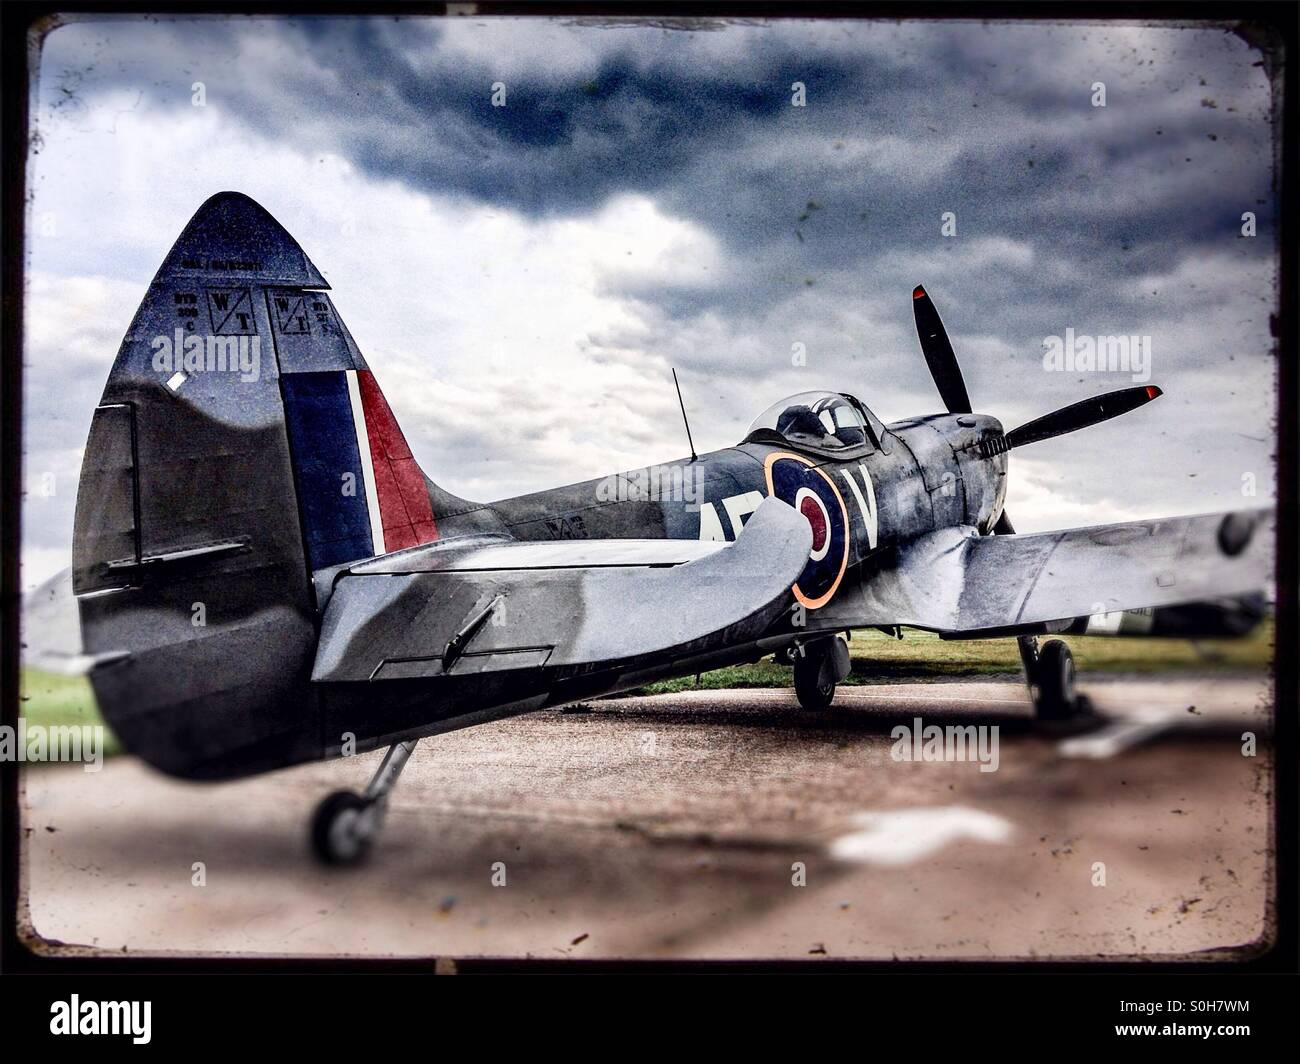 Spitfire aeroplane at airfield just outside London - Stock Image